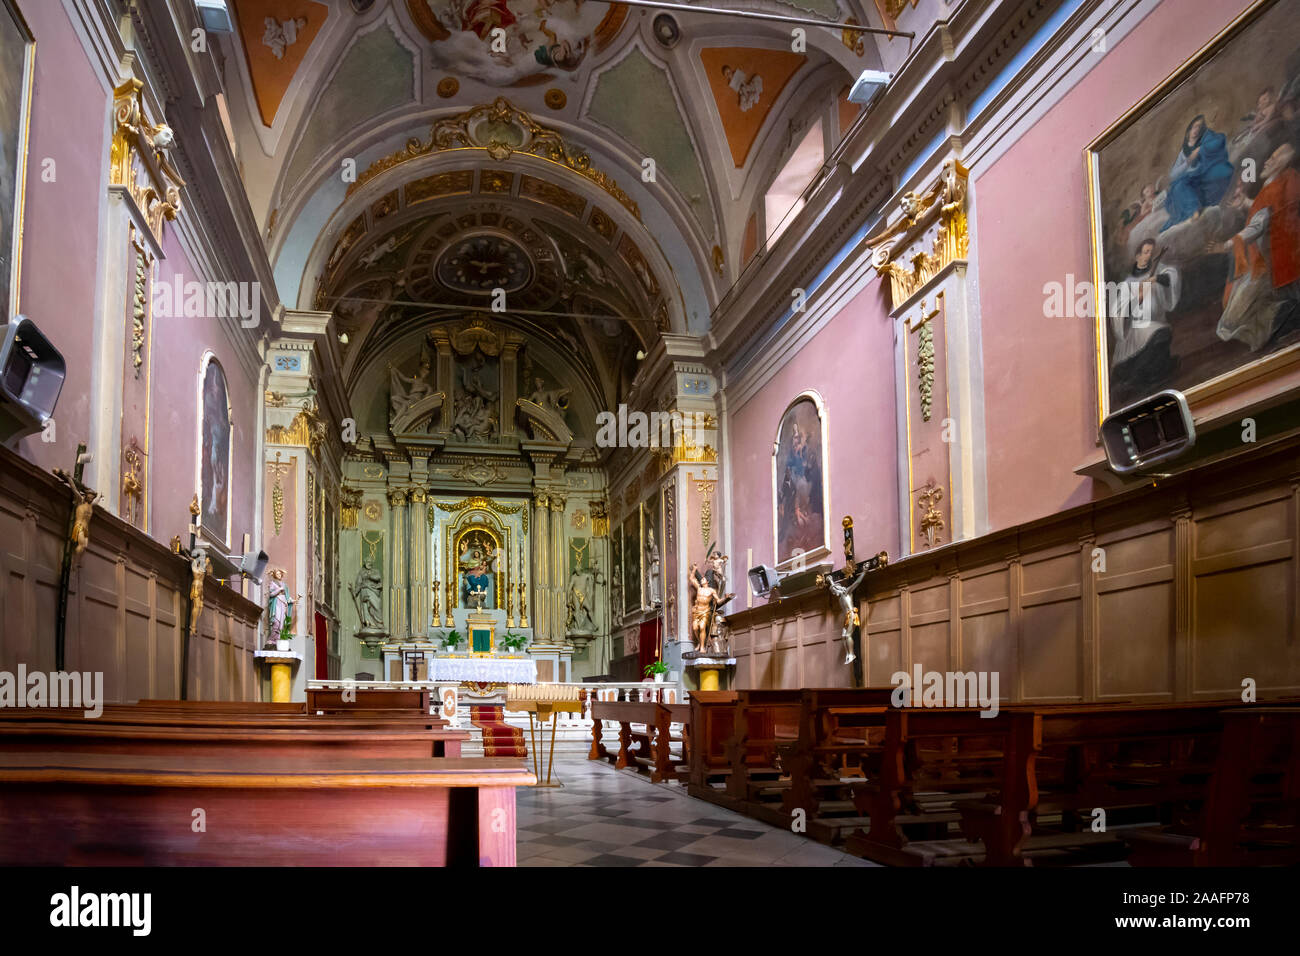 Interior of the Chiesa di San Sebastiano, a small 17th century church oratory with a wooden statue by Maragliano in the village of Dolceacqua, Italy. Stock Photo